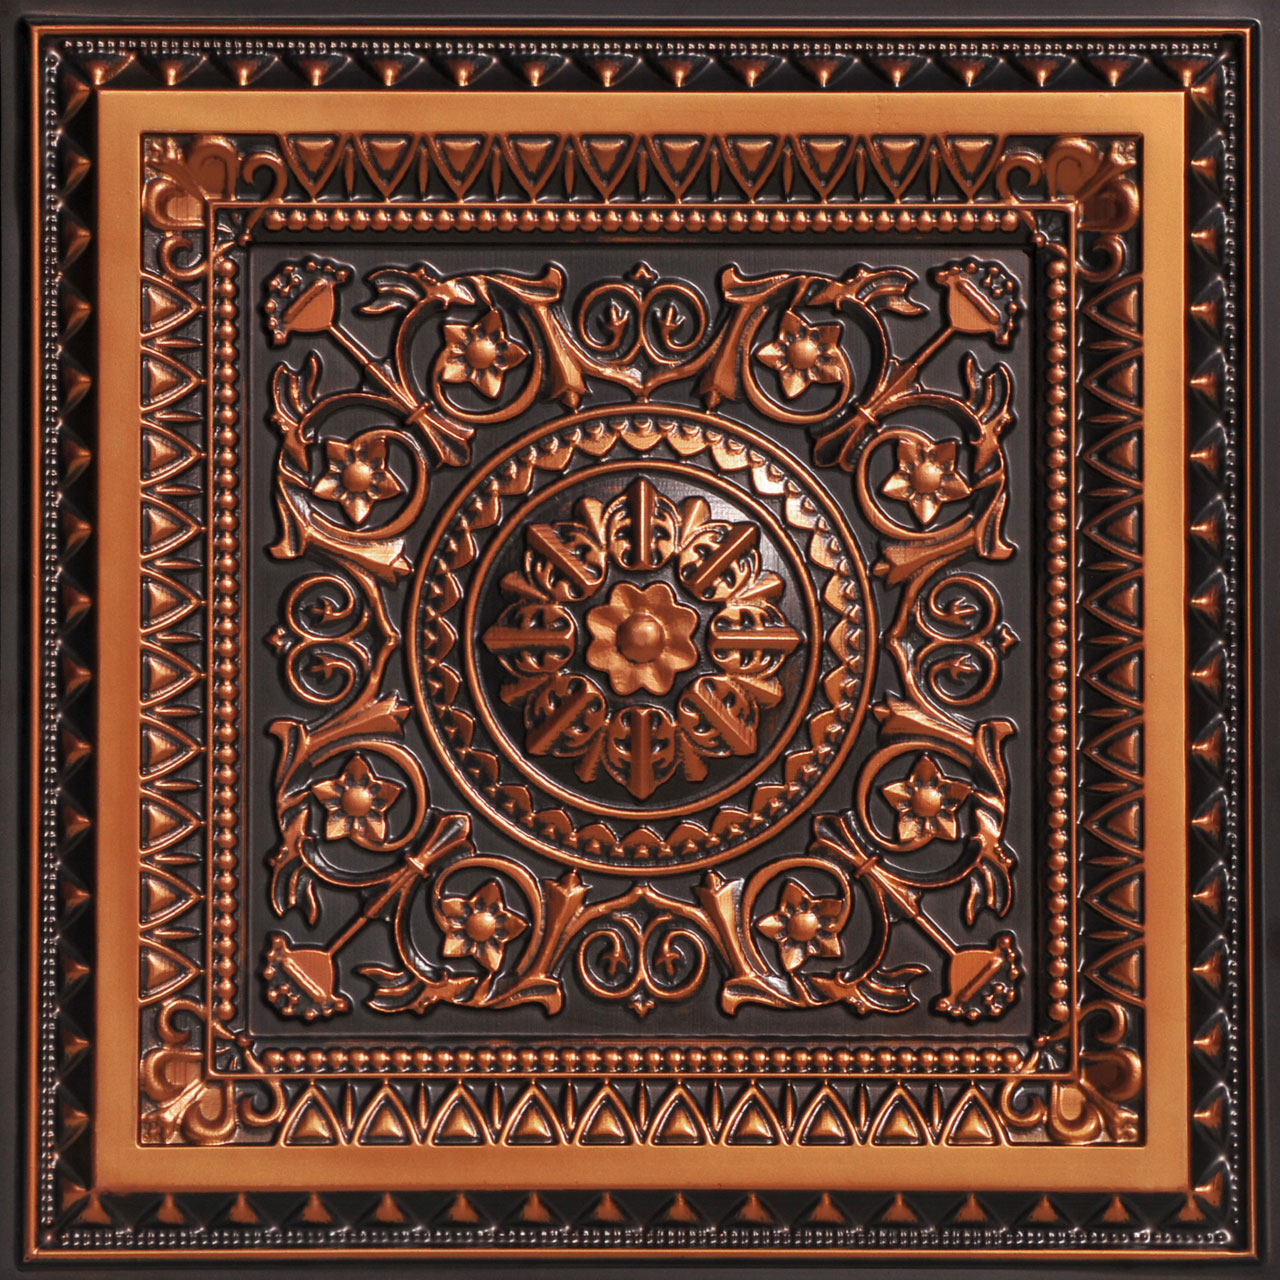 La Scala 2 ft. x 2 ft. PVC Glue-up or Lay in Ceiling Tile in Antique Copper